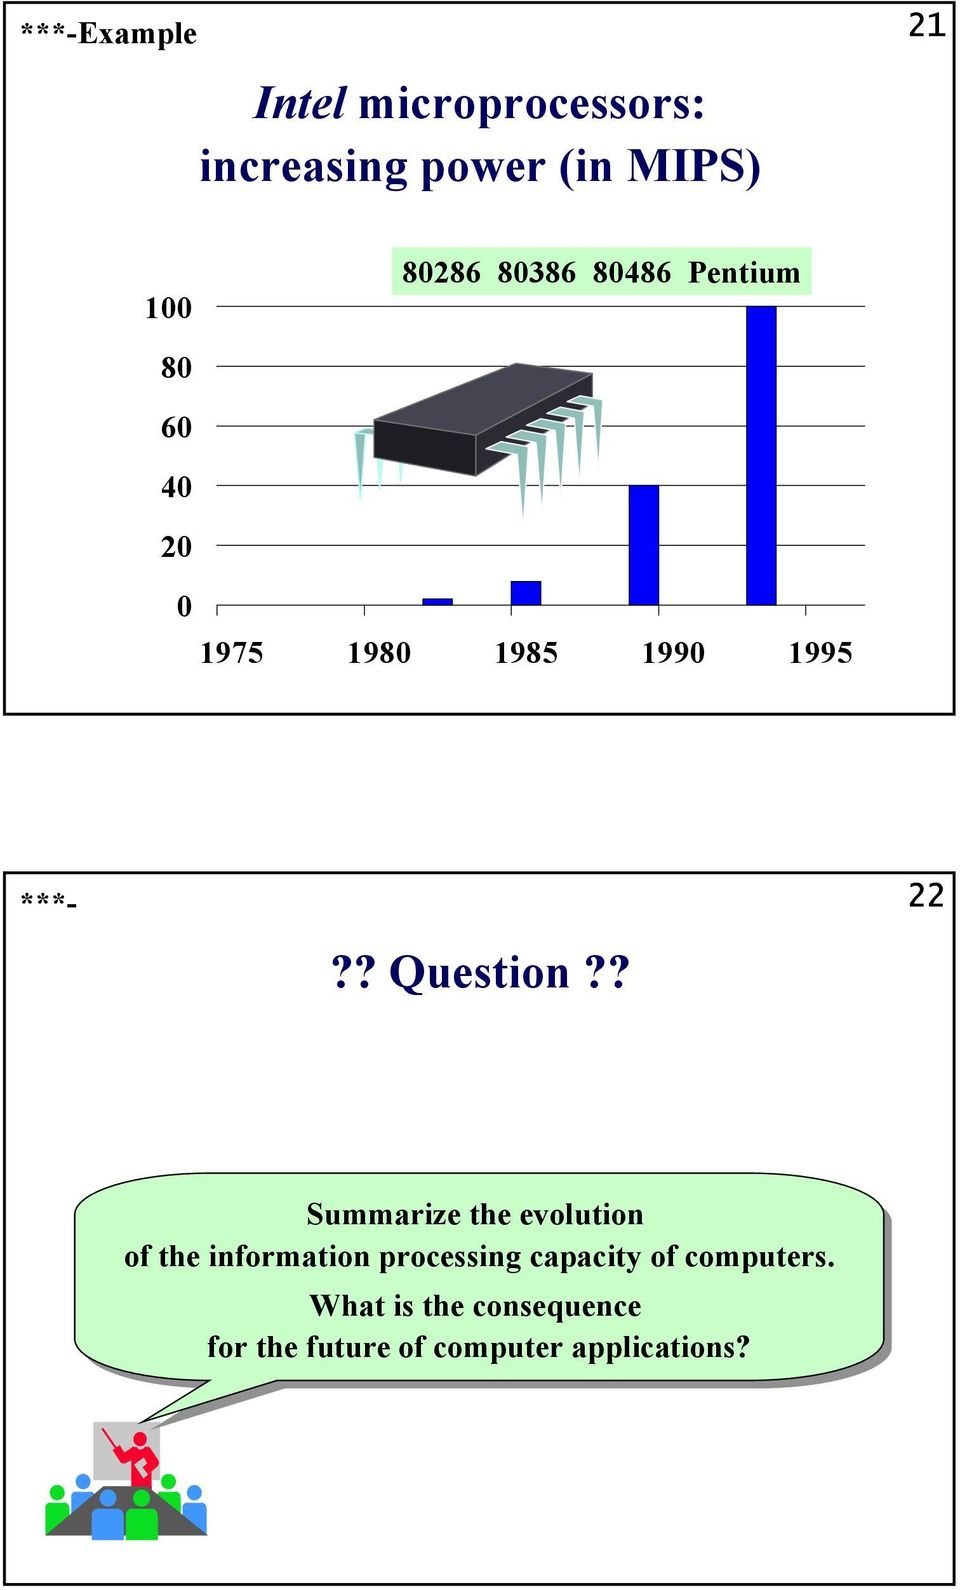 ? 22 Summarize the evolution of of the information processing capacity of